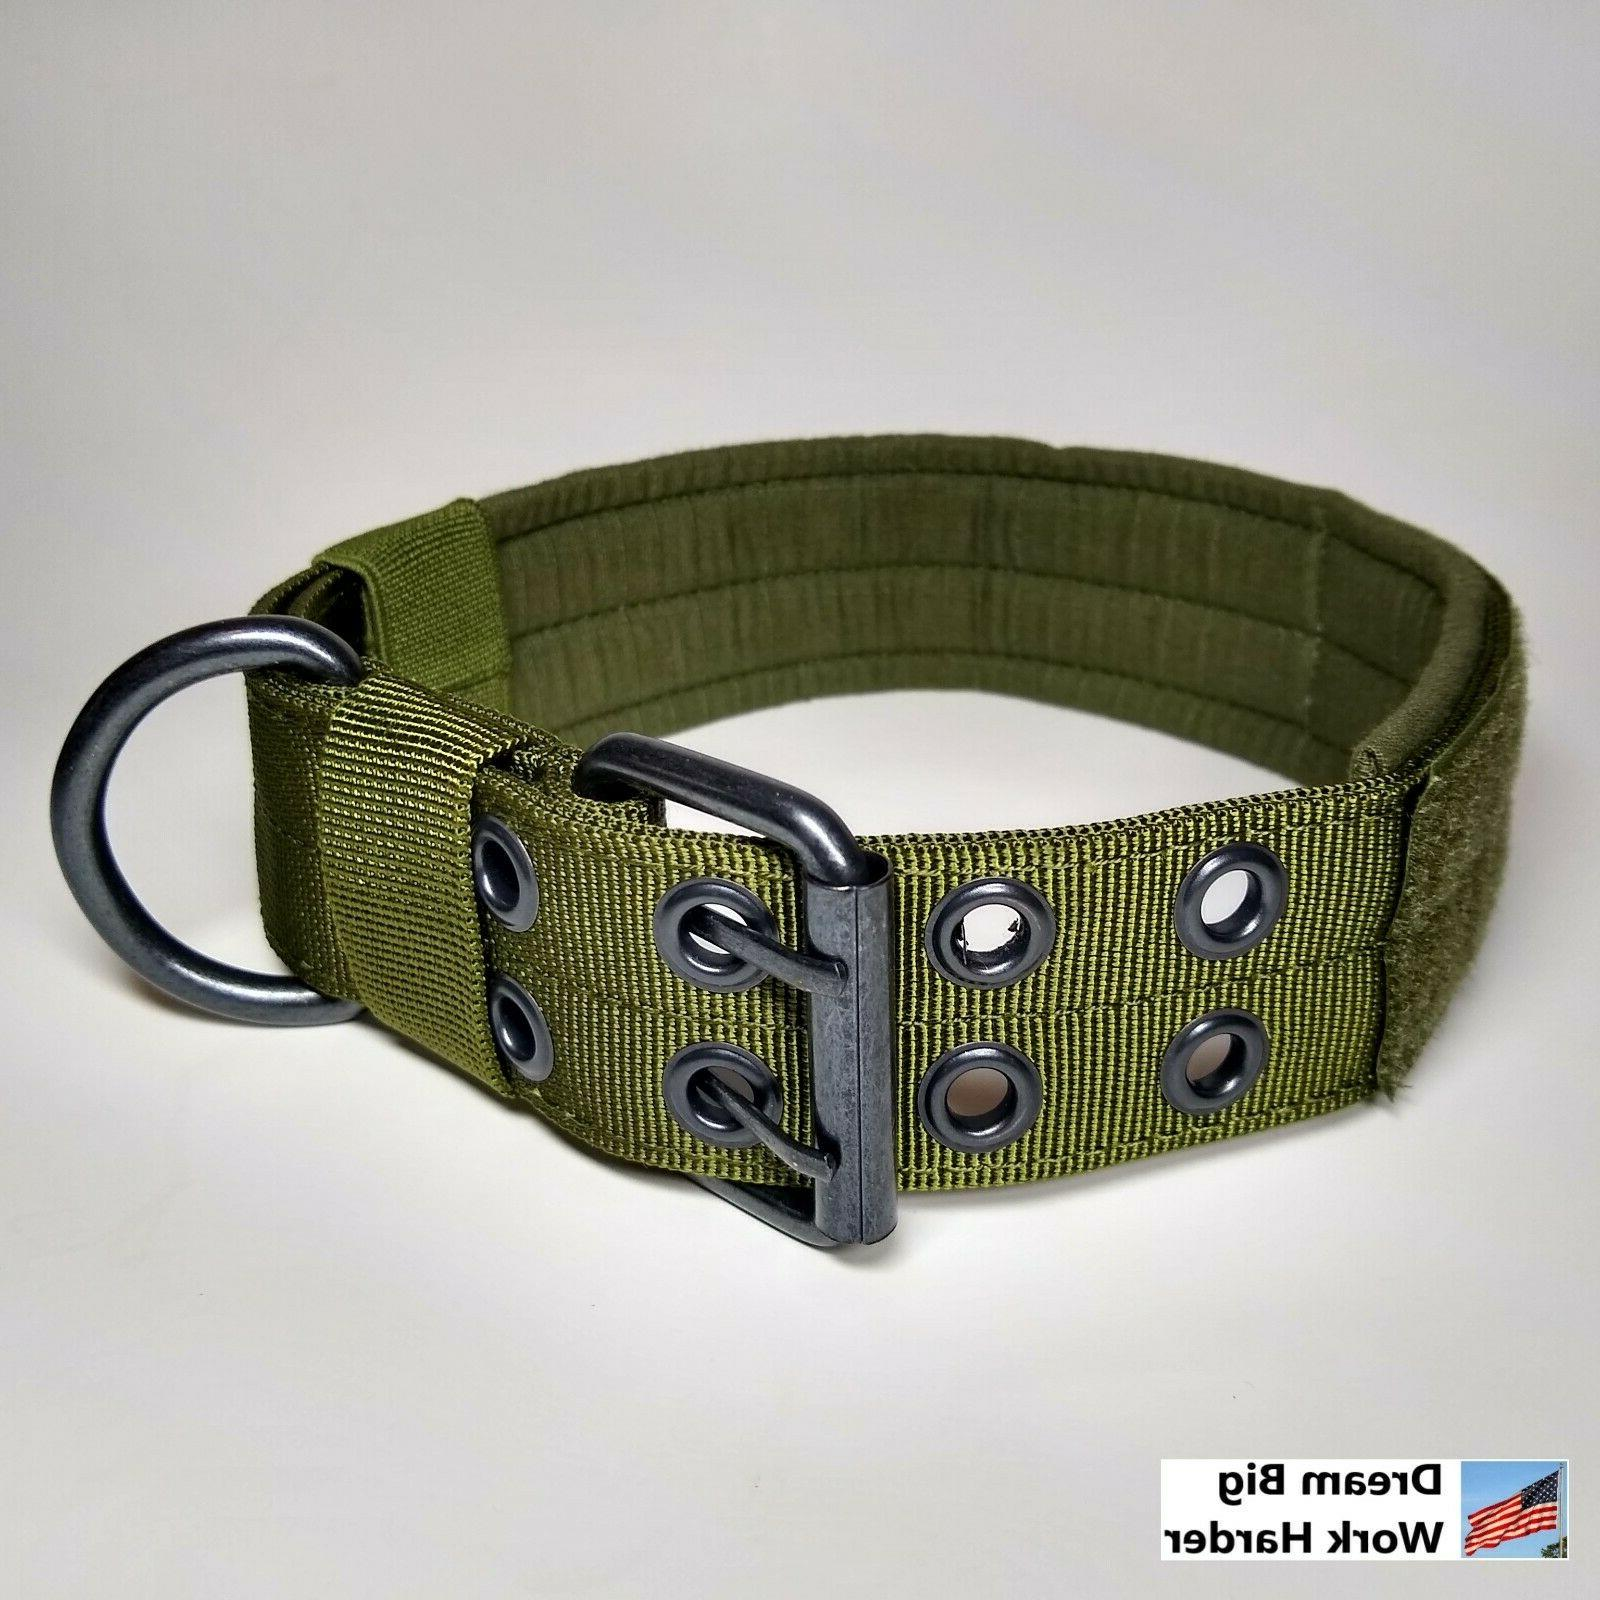 Large Nylon Dog Tactical Military with Metal